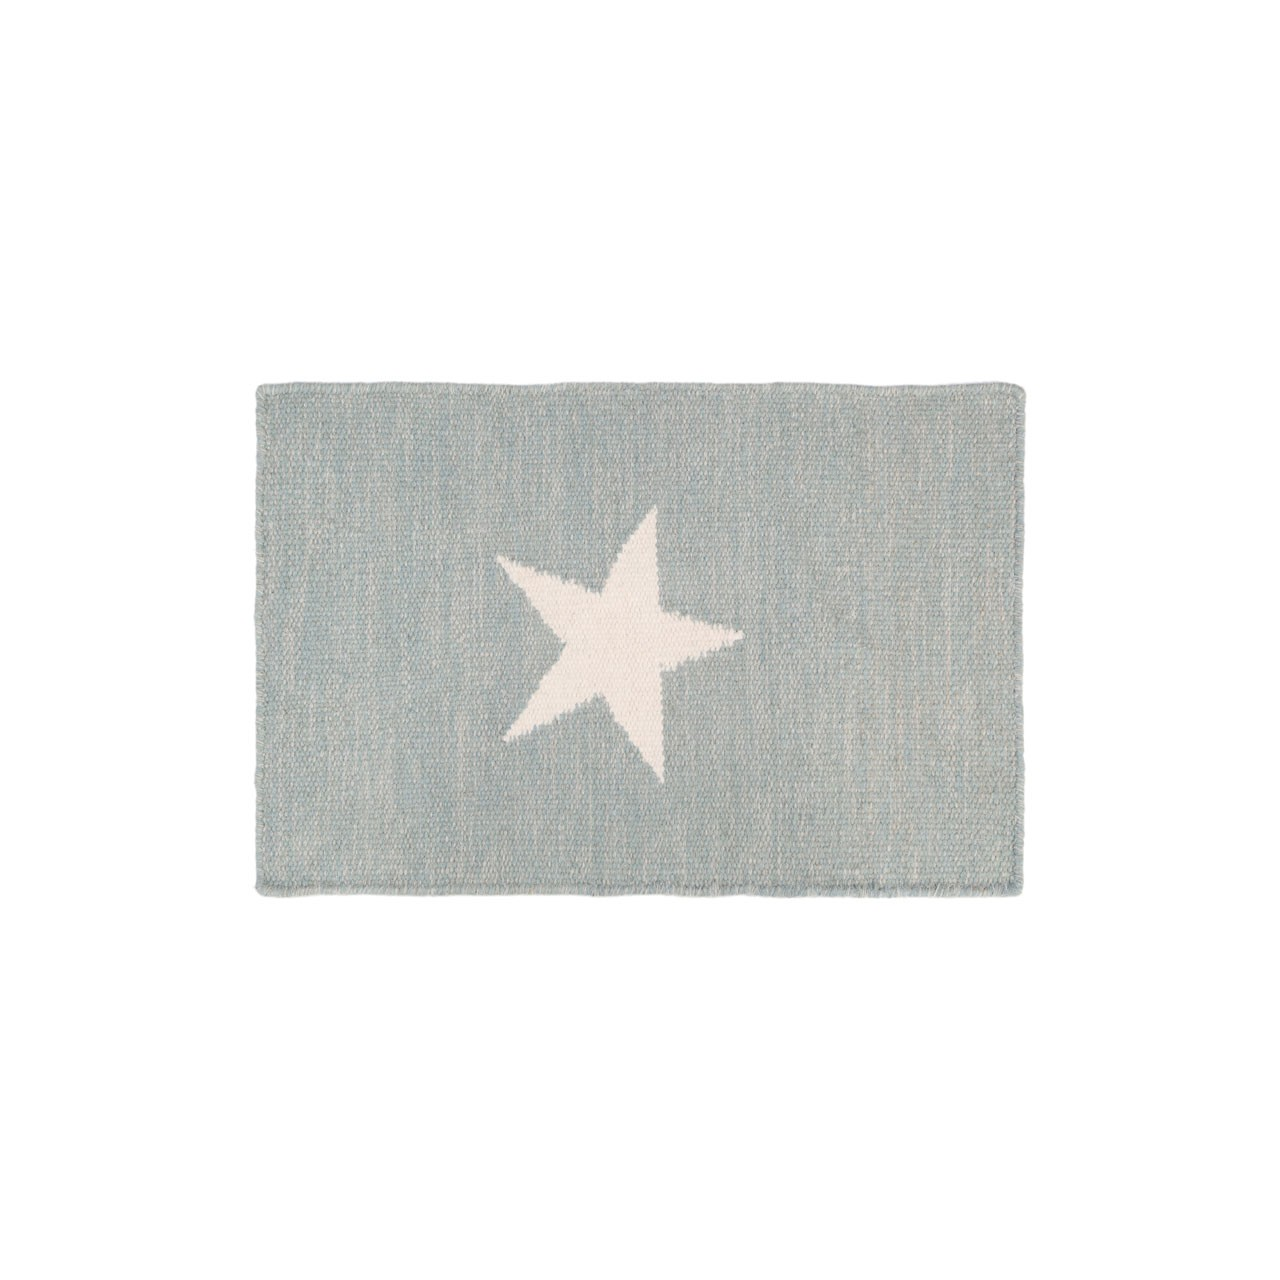 Prime Furnishing Star Rug, Cotton - Grey